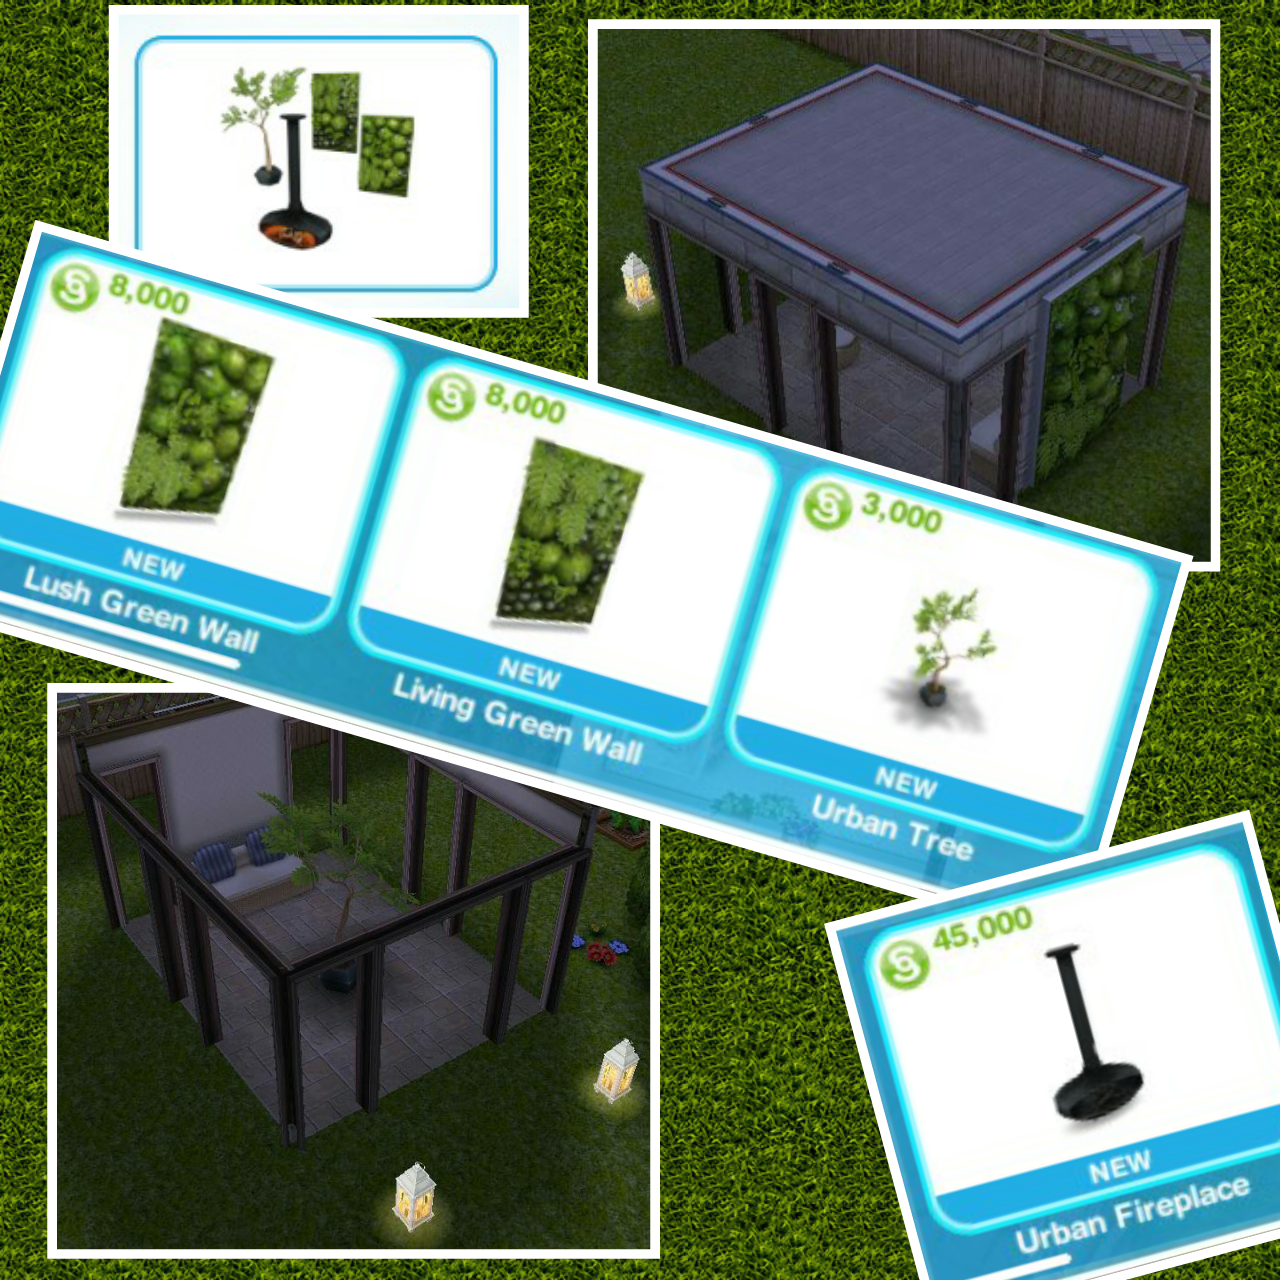 Urban house furniture Contemporary Urban Decorations Furniture Pack Image The Girl Who Games Sims Freeplay Urban Furniture Event The Girl Who Games